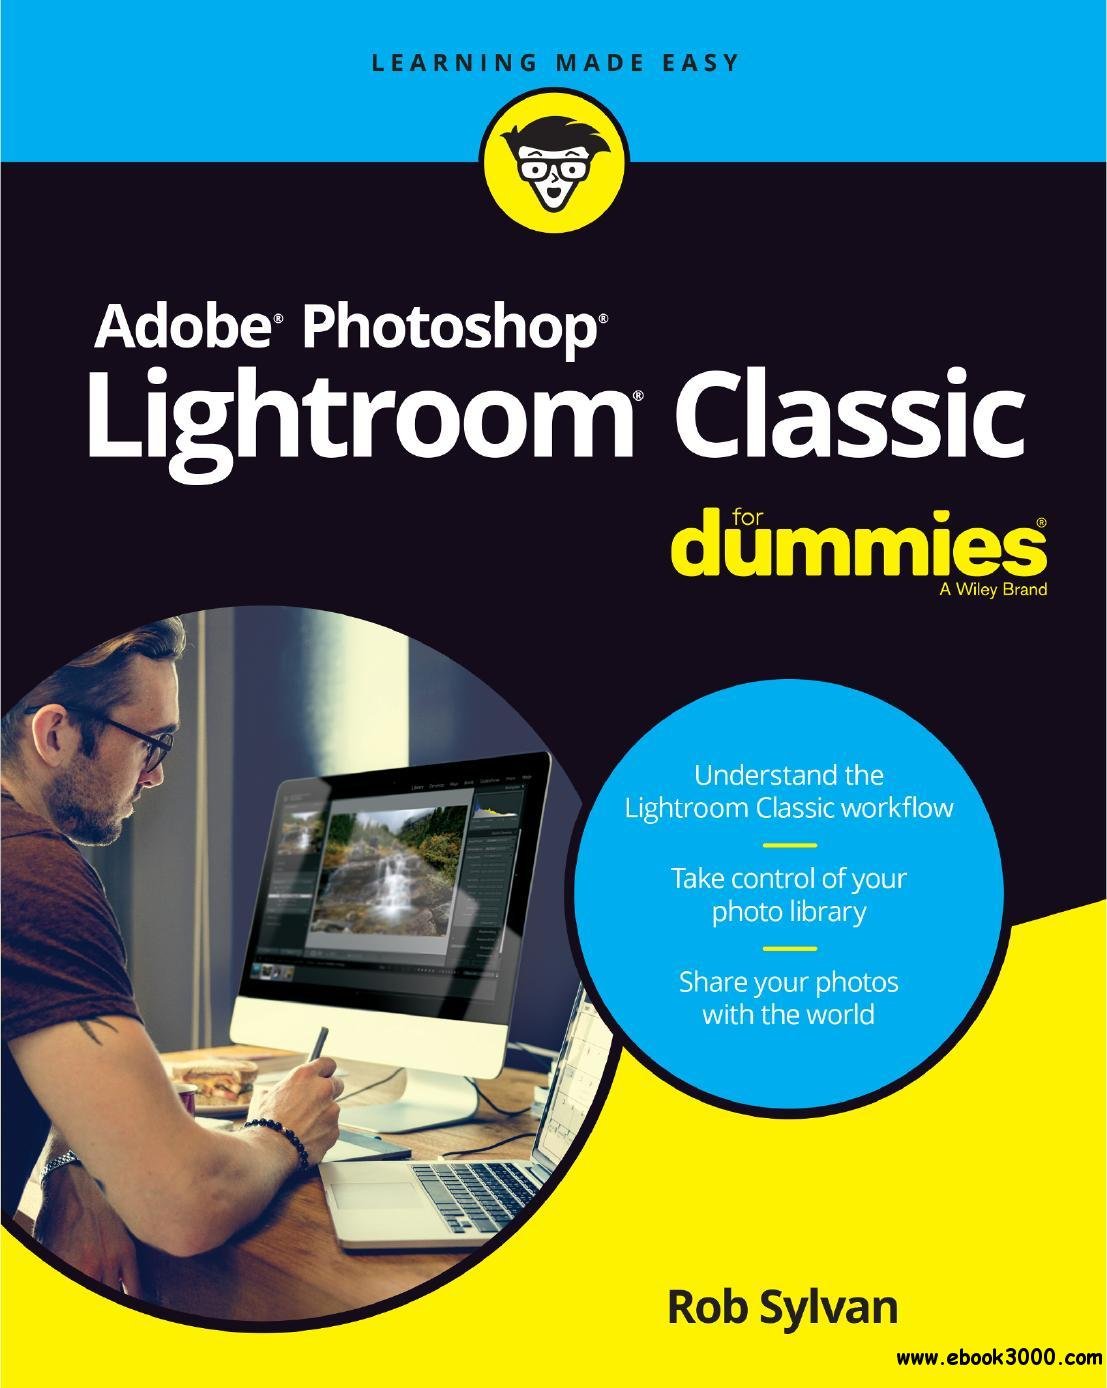 Adobe Photoshop Lightroom Classic For Dummies